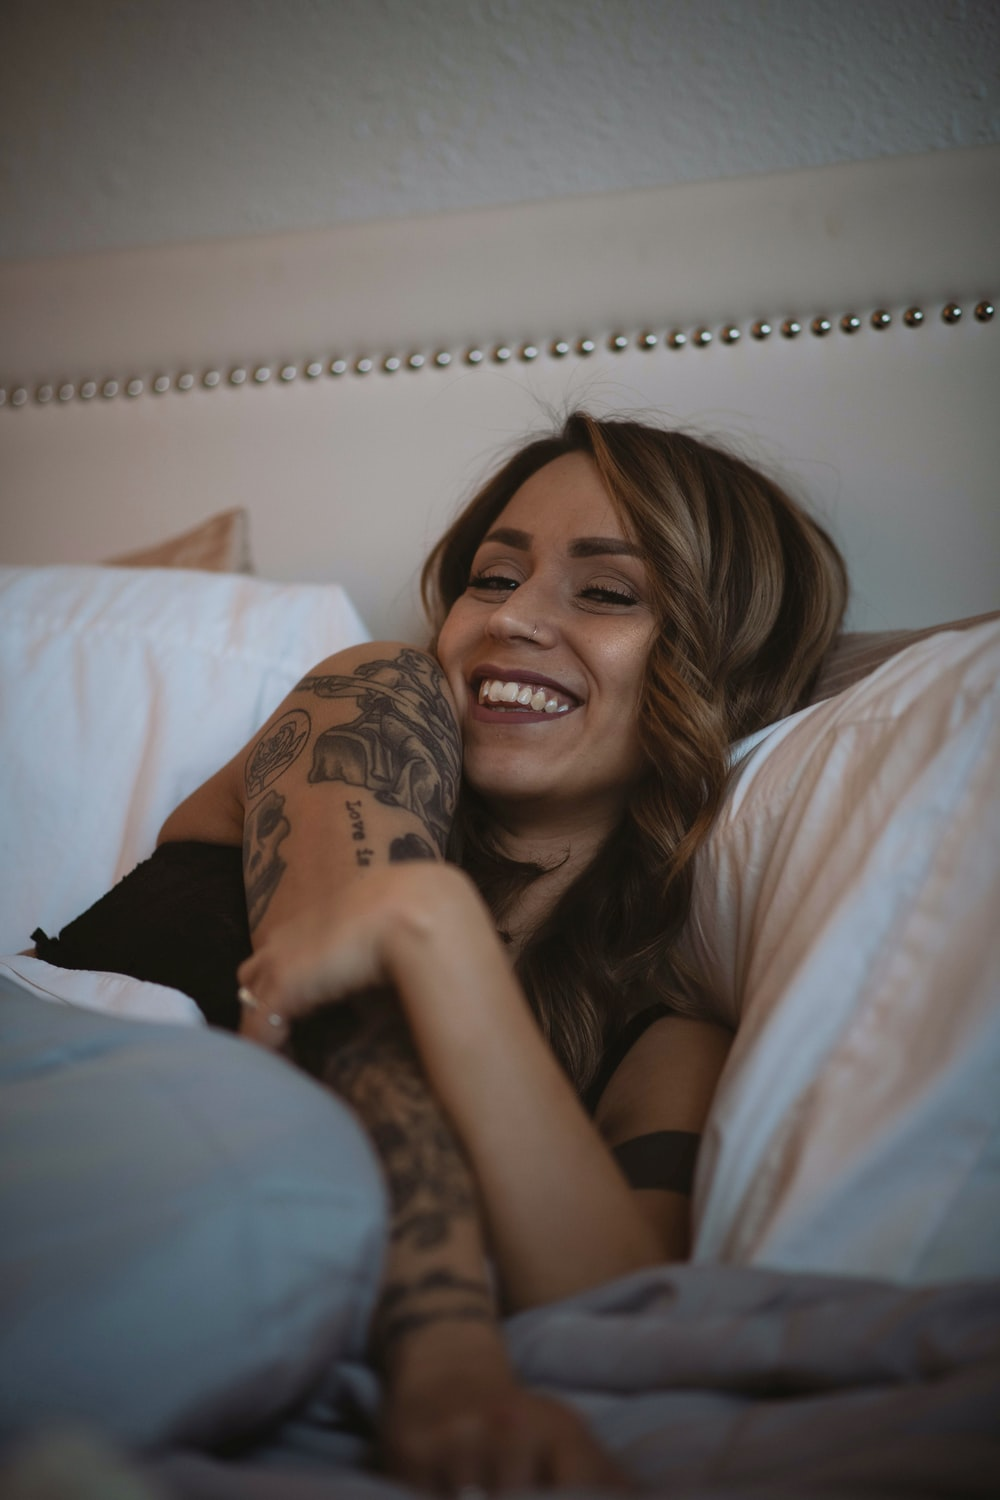 woman wearing black top lying on bed laughing